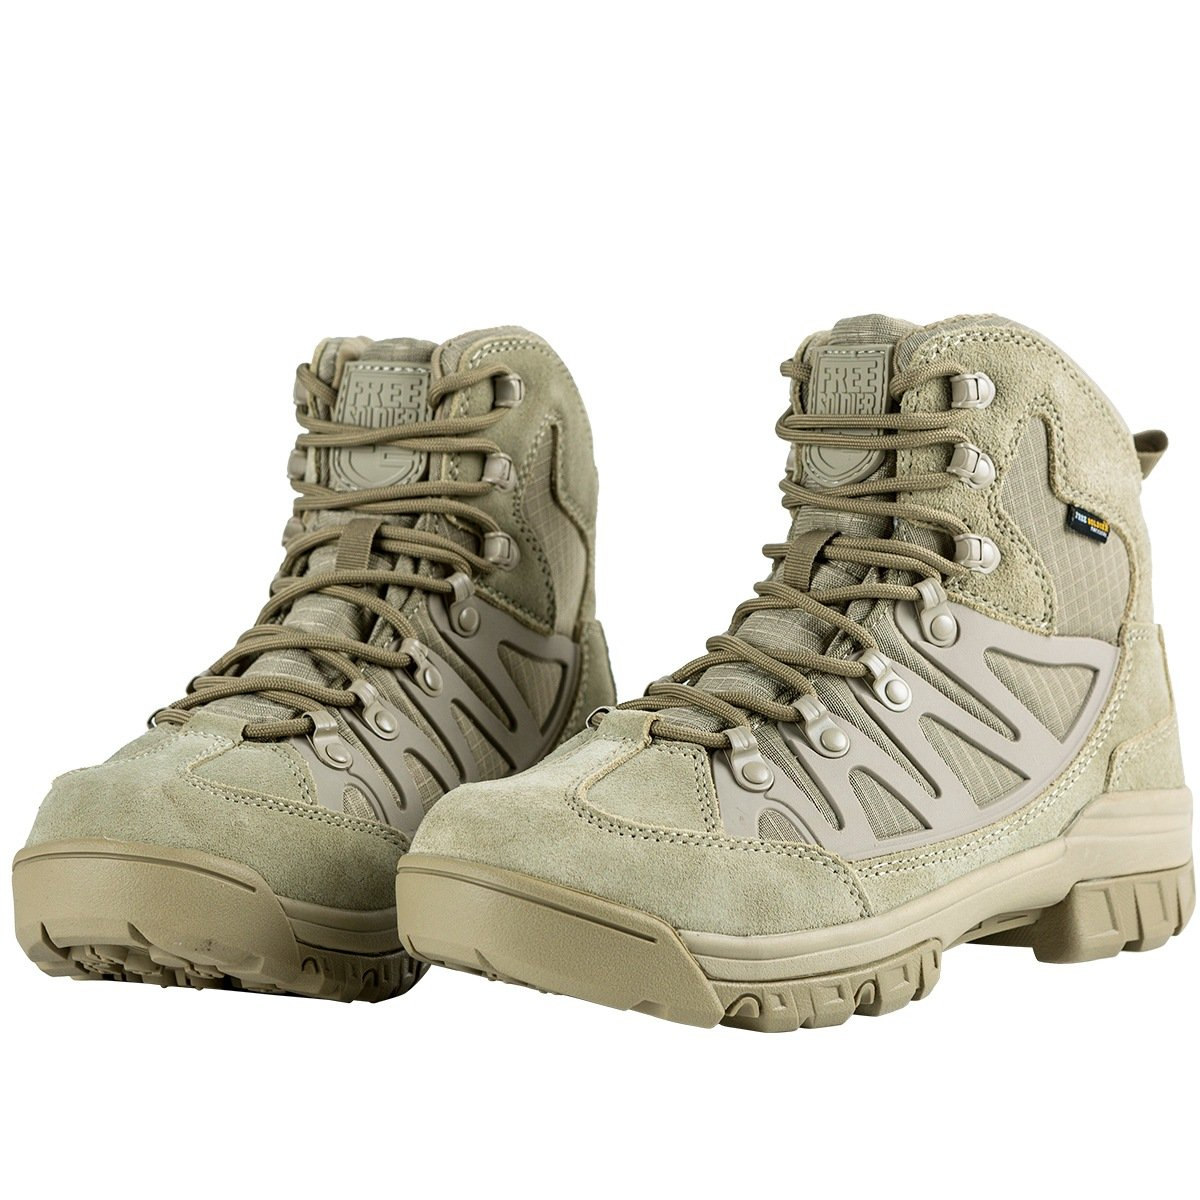 FREE SOLDIER Waterproof Mid Hiking Boots 6 Inch Outdoor Breathable Suedu Leather Tactical and Military Shoe(Soil 10.5)